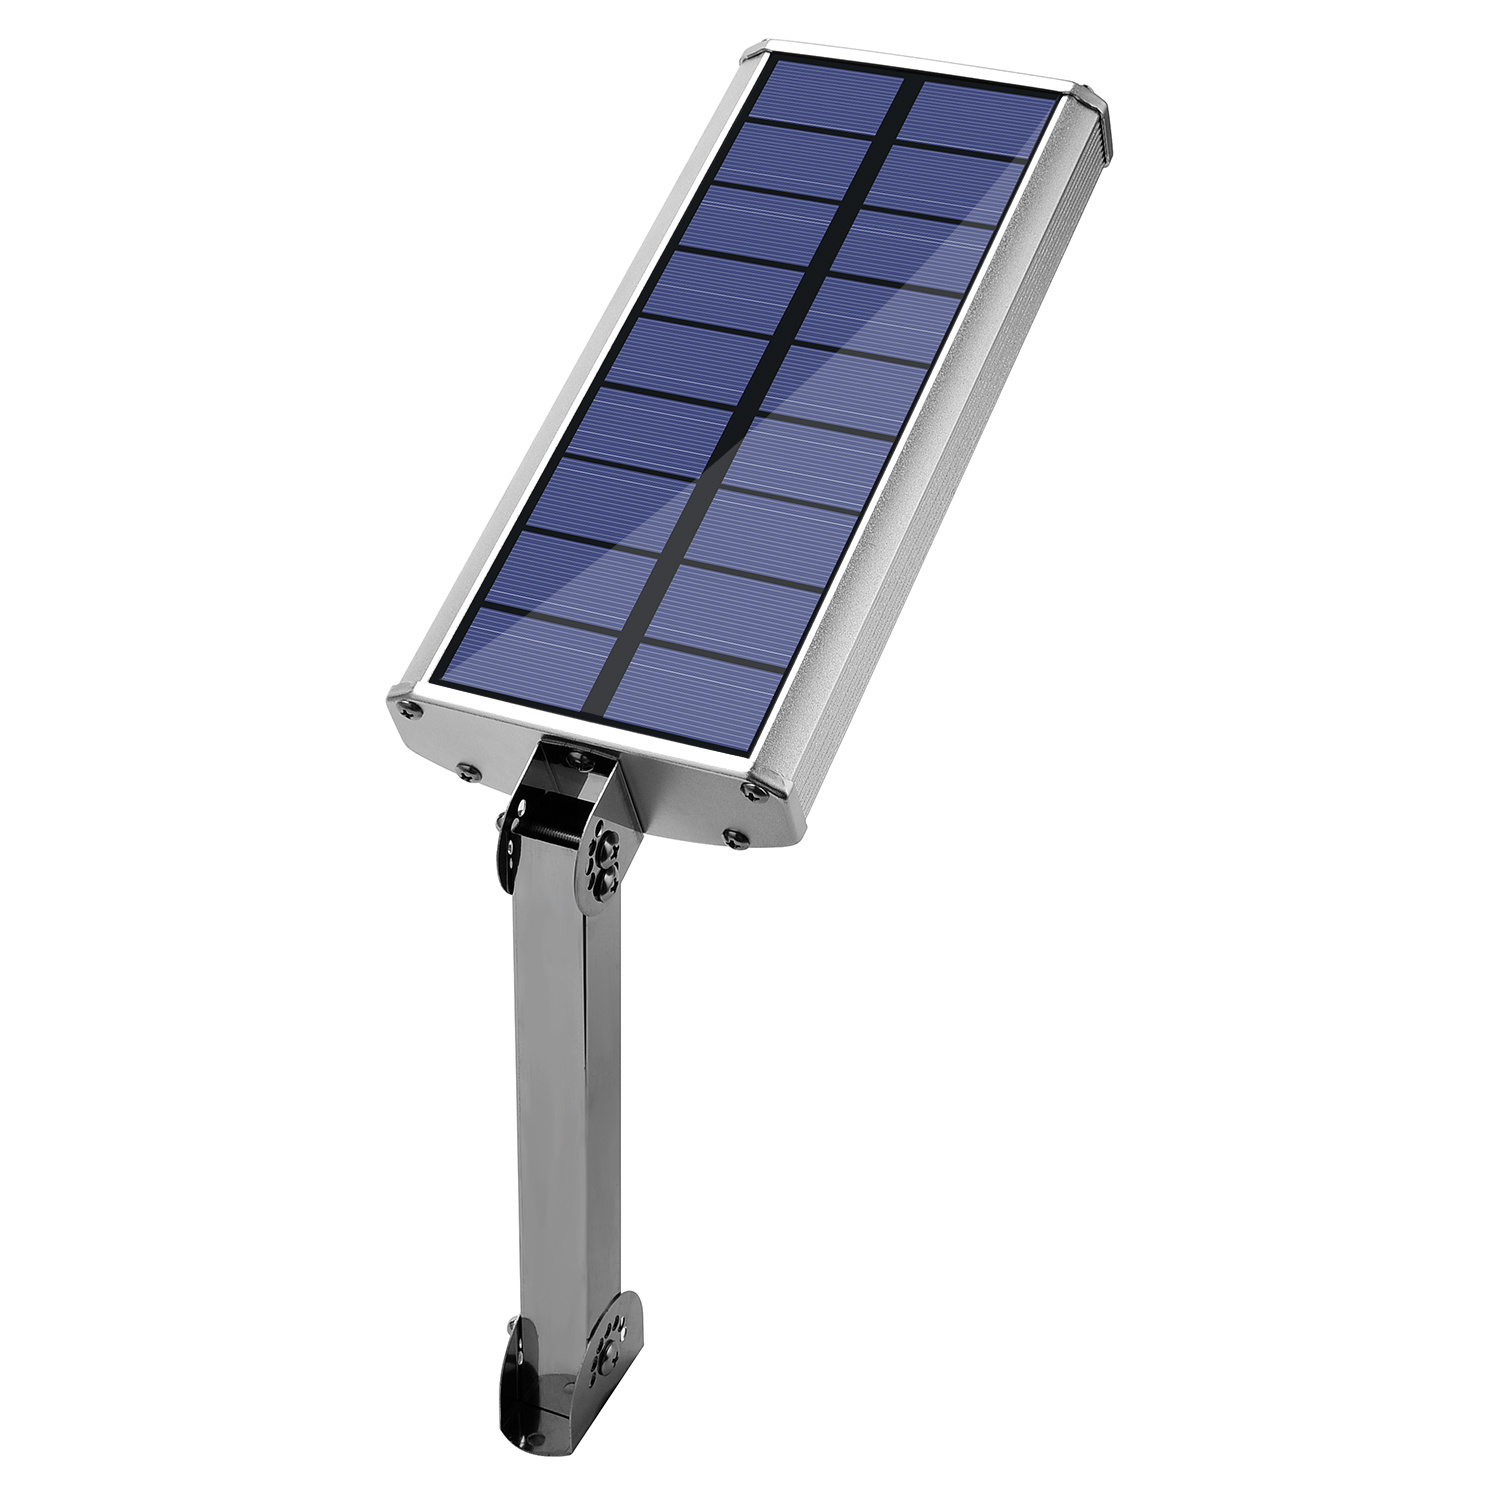 China Solar Arm Lamp Outdoor Home Use Led Wall Mount Solar House Lighting China Light Led Light